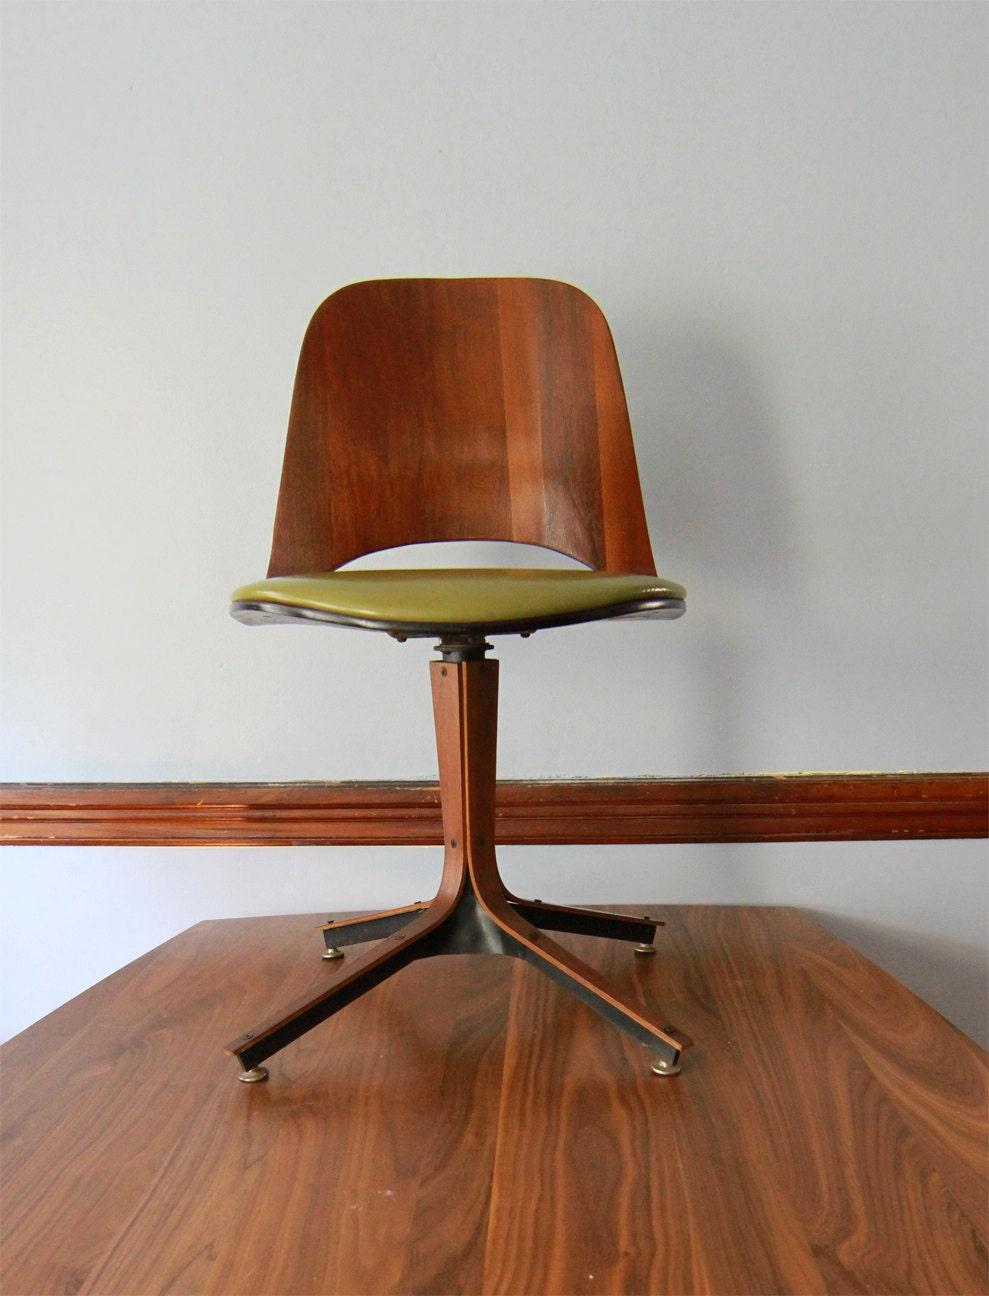 Plycraft Swivel Desk Chair - Mid Century Modern